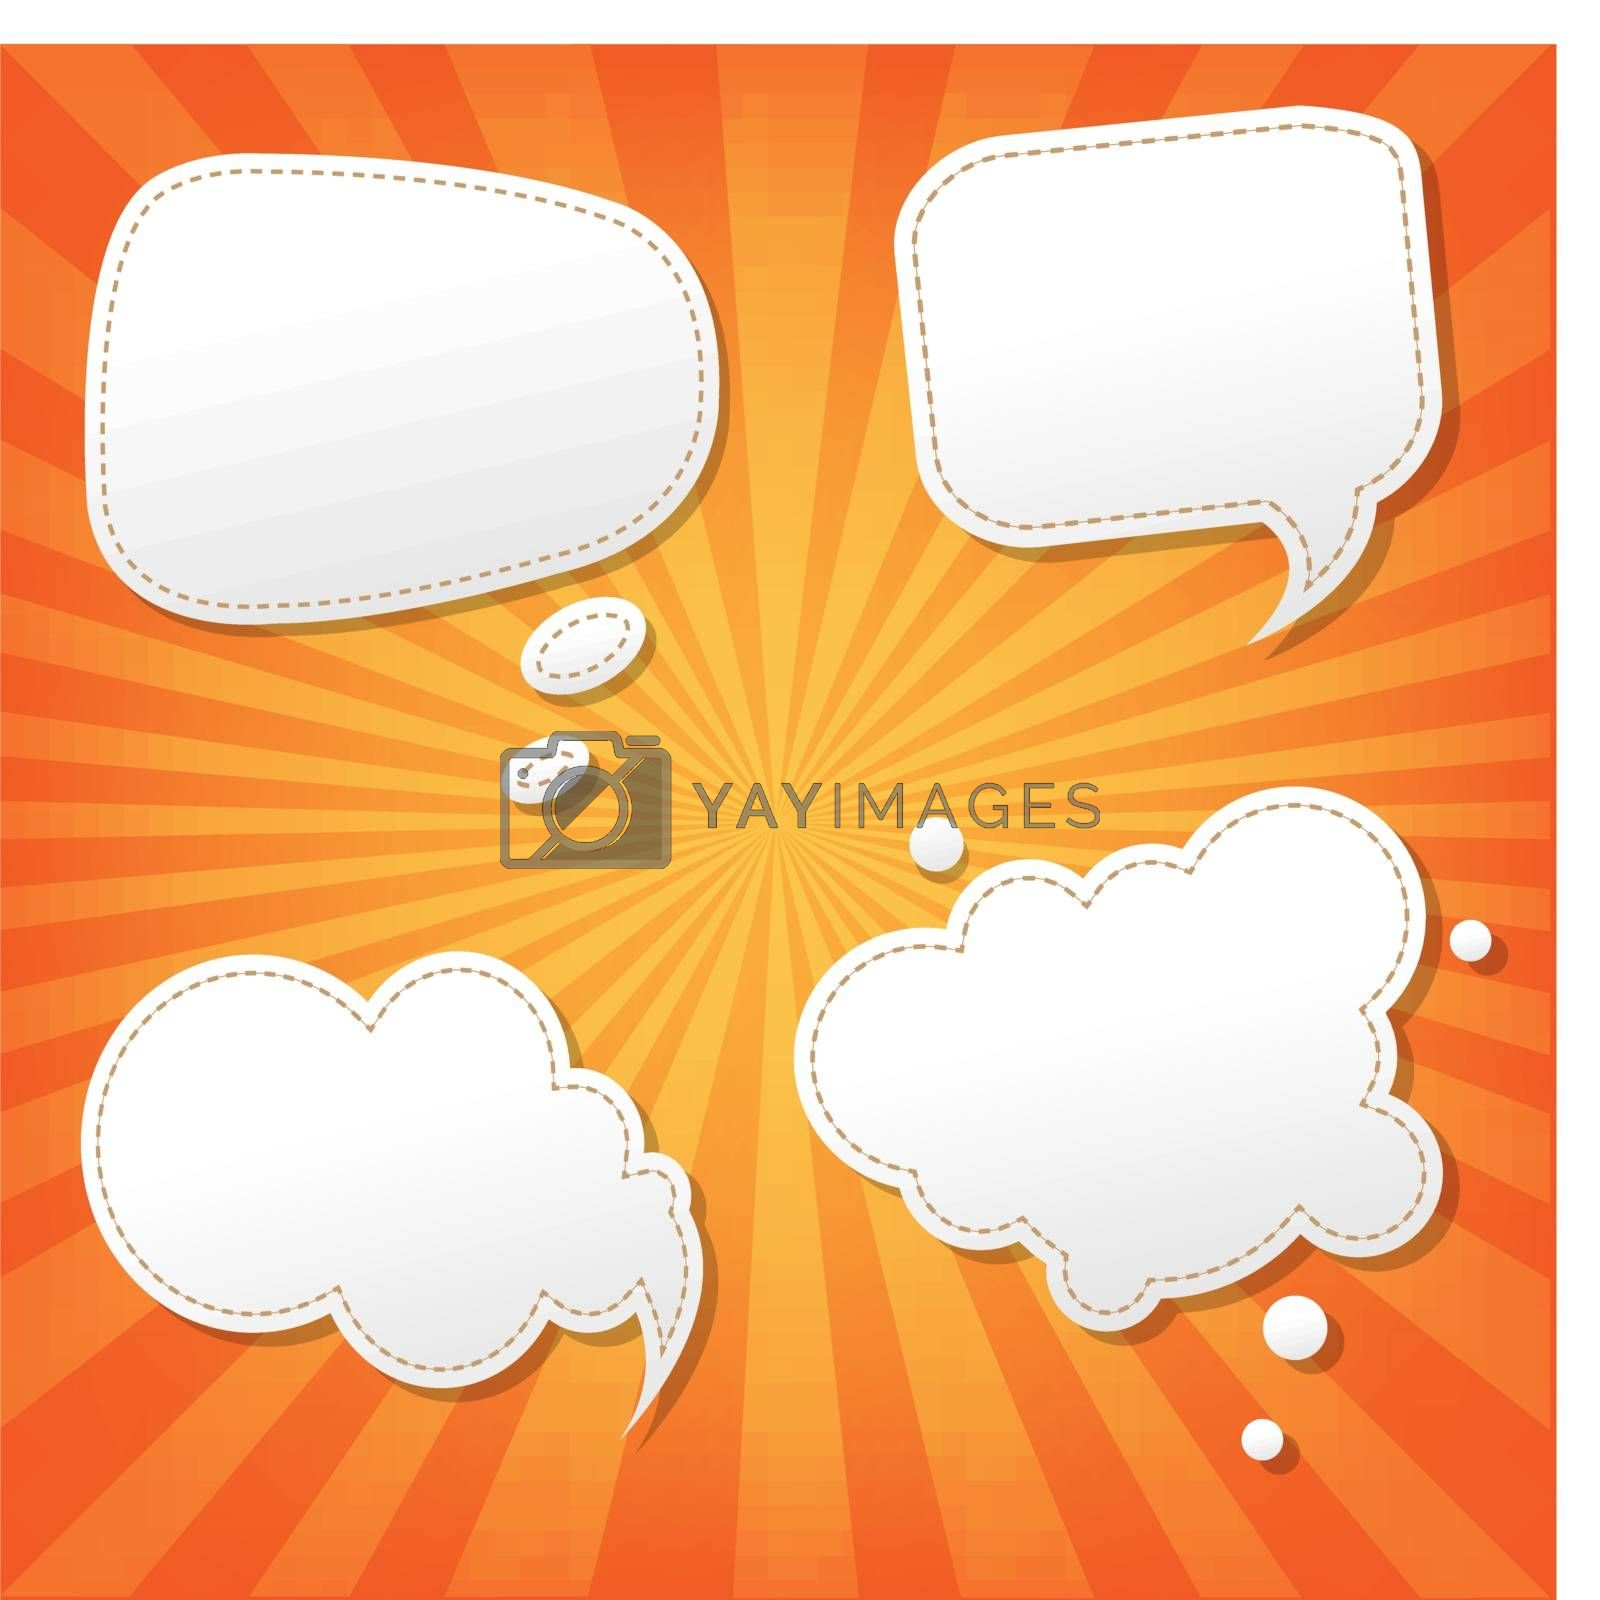 Orange Sunburst Poster With Speech Bubble by barbaliss